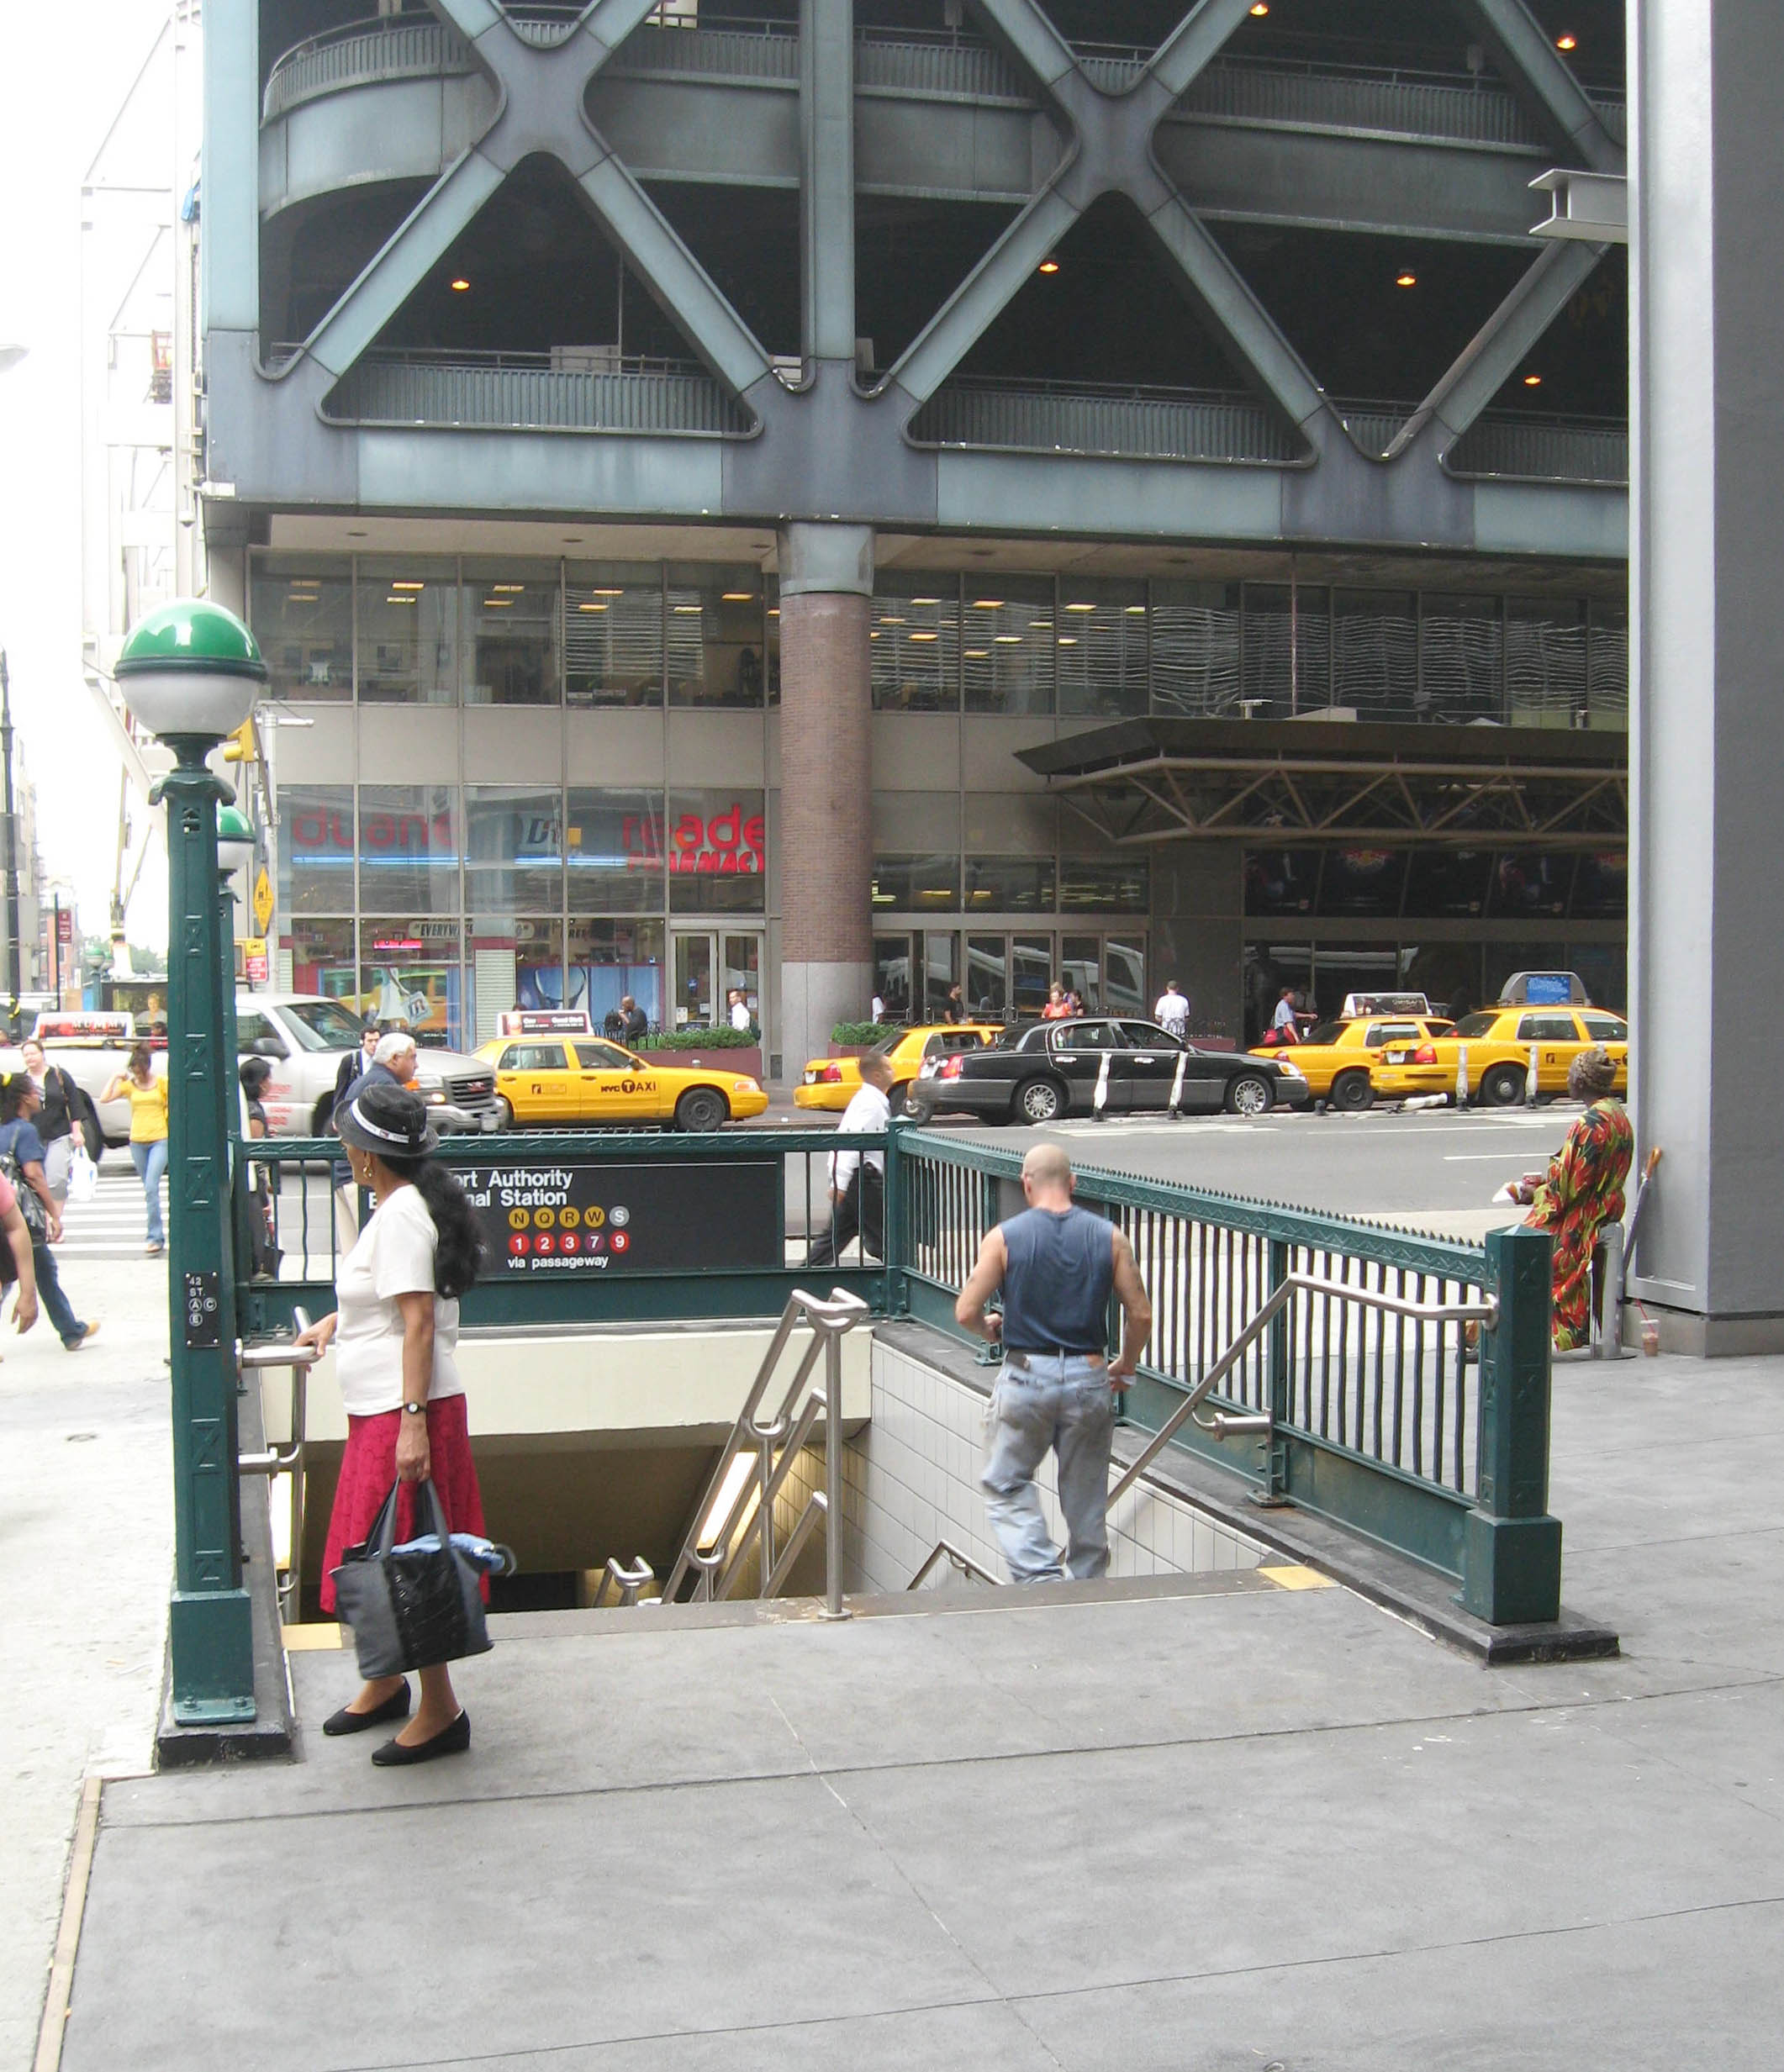 42nd Street – Port Authority Bus Terminal